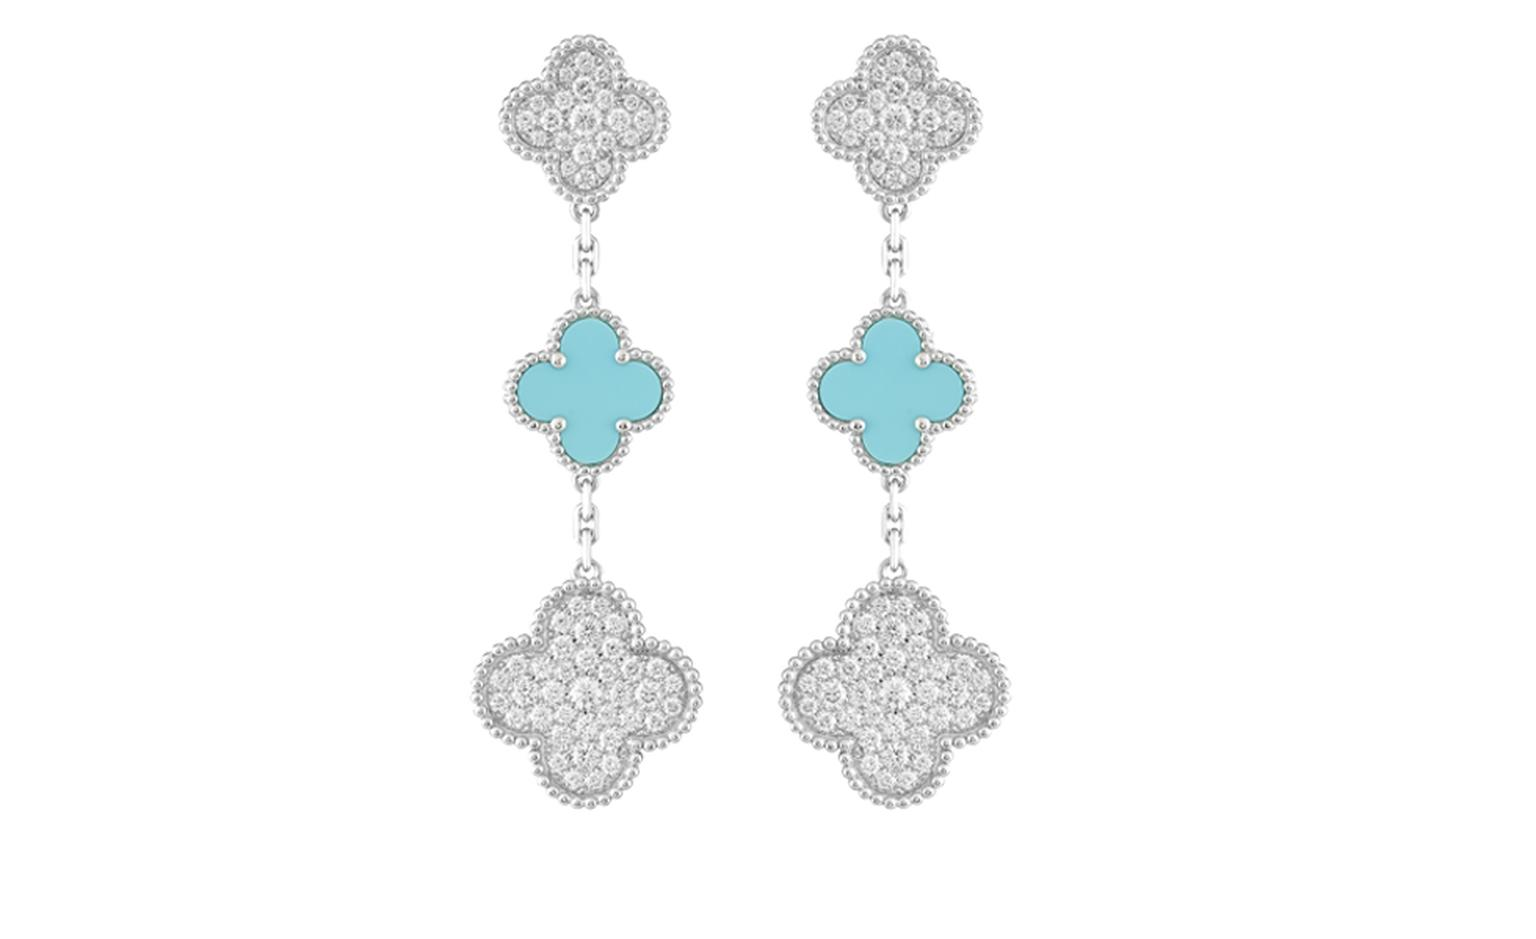 Limited Edition Princess Charlene Alhambra earclips, white gold, diamonds (3.4 cts) and turquoise. Price from 28 300 €